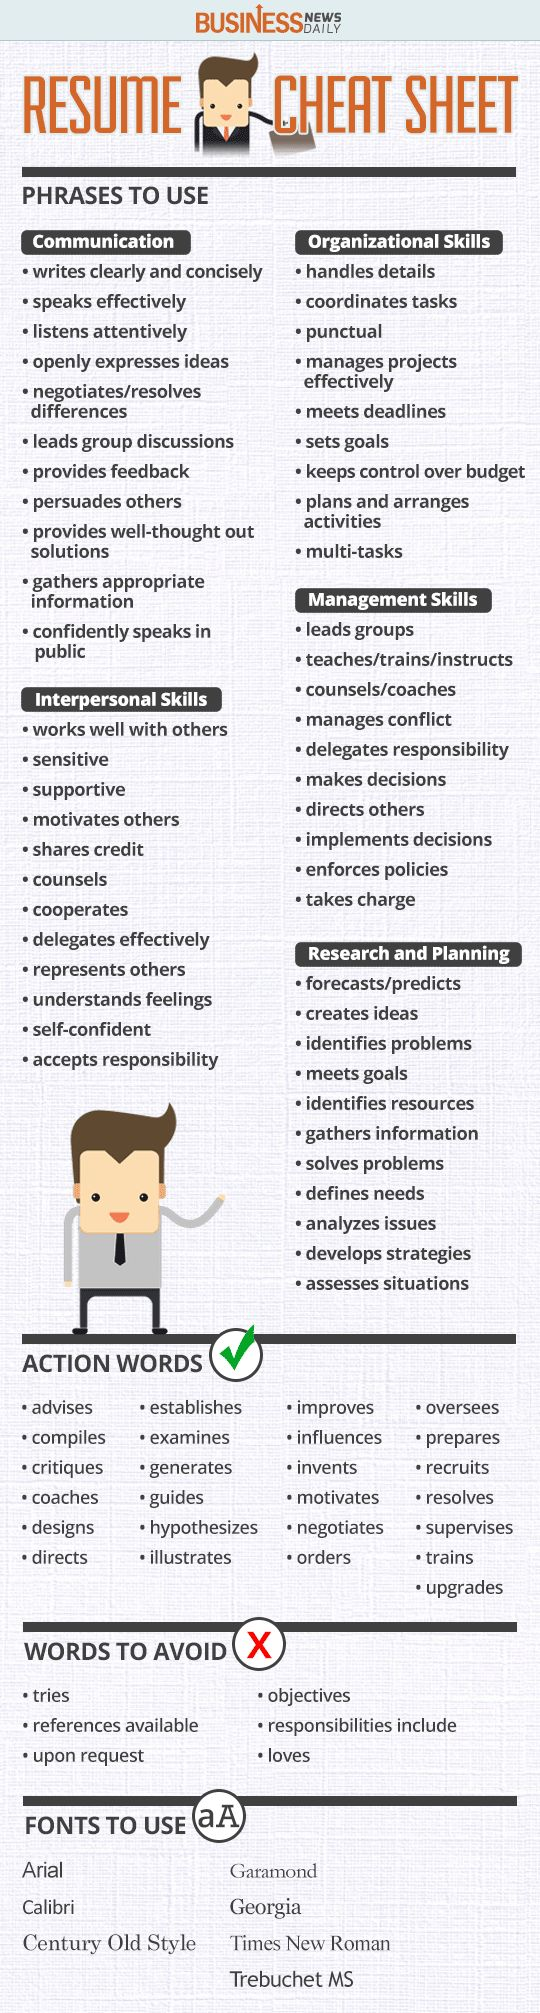 Opposenewapstandardsus  Sweet  Ideas About Resume On Pinterest  Cv Format Resume Cv And  With Magnificent Resume Cheat Sheet Infographic Andrews Almost Done With A Complete Unit On Employment Which With Alluring Resume Sample Skills Also Should I Put My Picture On My Resume In Addition Fresher Resume And Good Resume Examples For College Students As Well As Quality Assurance Specialist Resume Additionally Profile For A Resume From Pinterestcom With Opposenewapstandardsus  Magnificent  Ideas About Resume On Pinterest  Cv Format Resume Cv And  With Alluring Resume Cheat Sheet Infographic Andrews Almost Done With A Complete Unit On Employment Which And Sweet Resume Sample Skills Also Should I Put My Picture On My Resume In Addition Fresher Resume From Pinterestcom